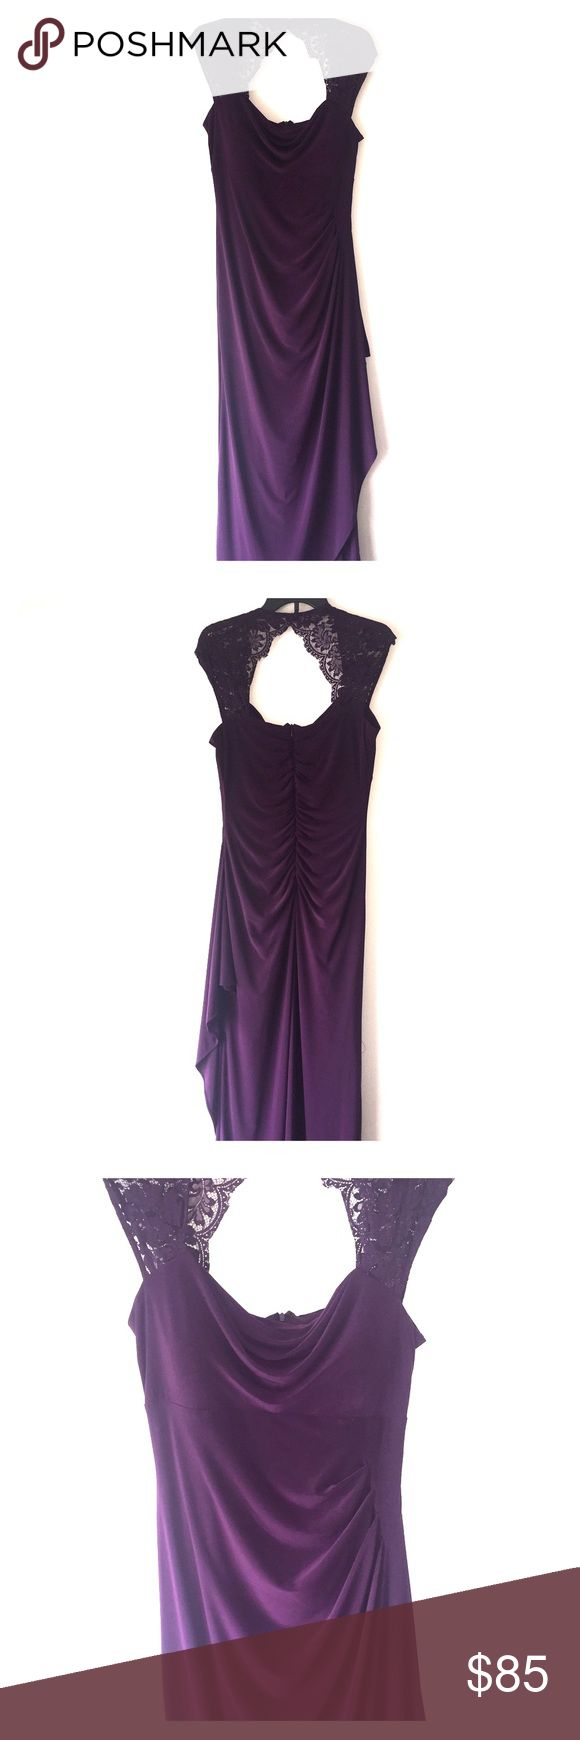 Long purple formal dress Lace top, cowl neck, purple gown with ruffles MSK Dresses Prom